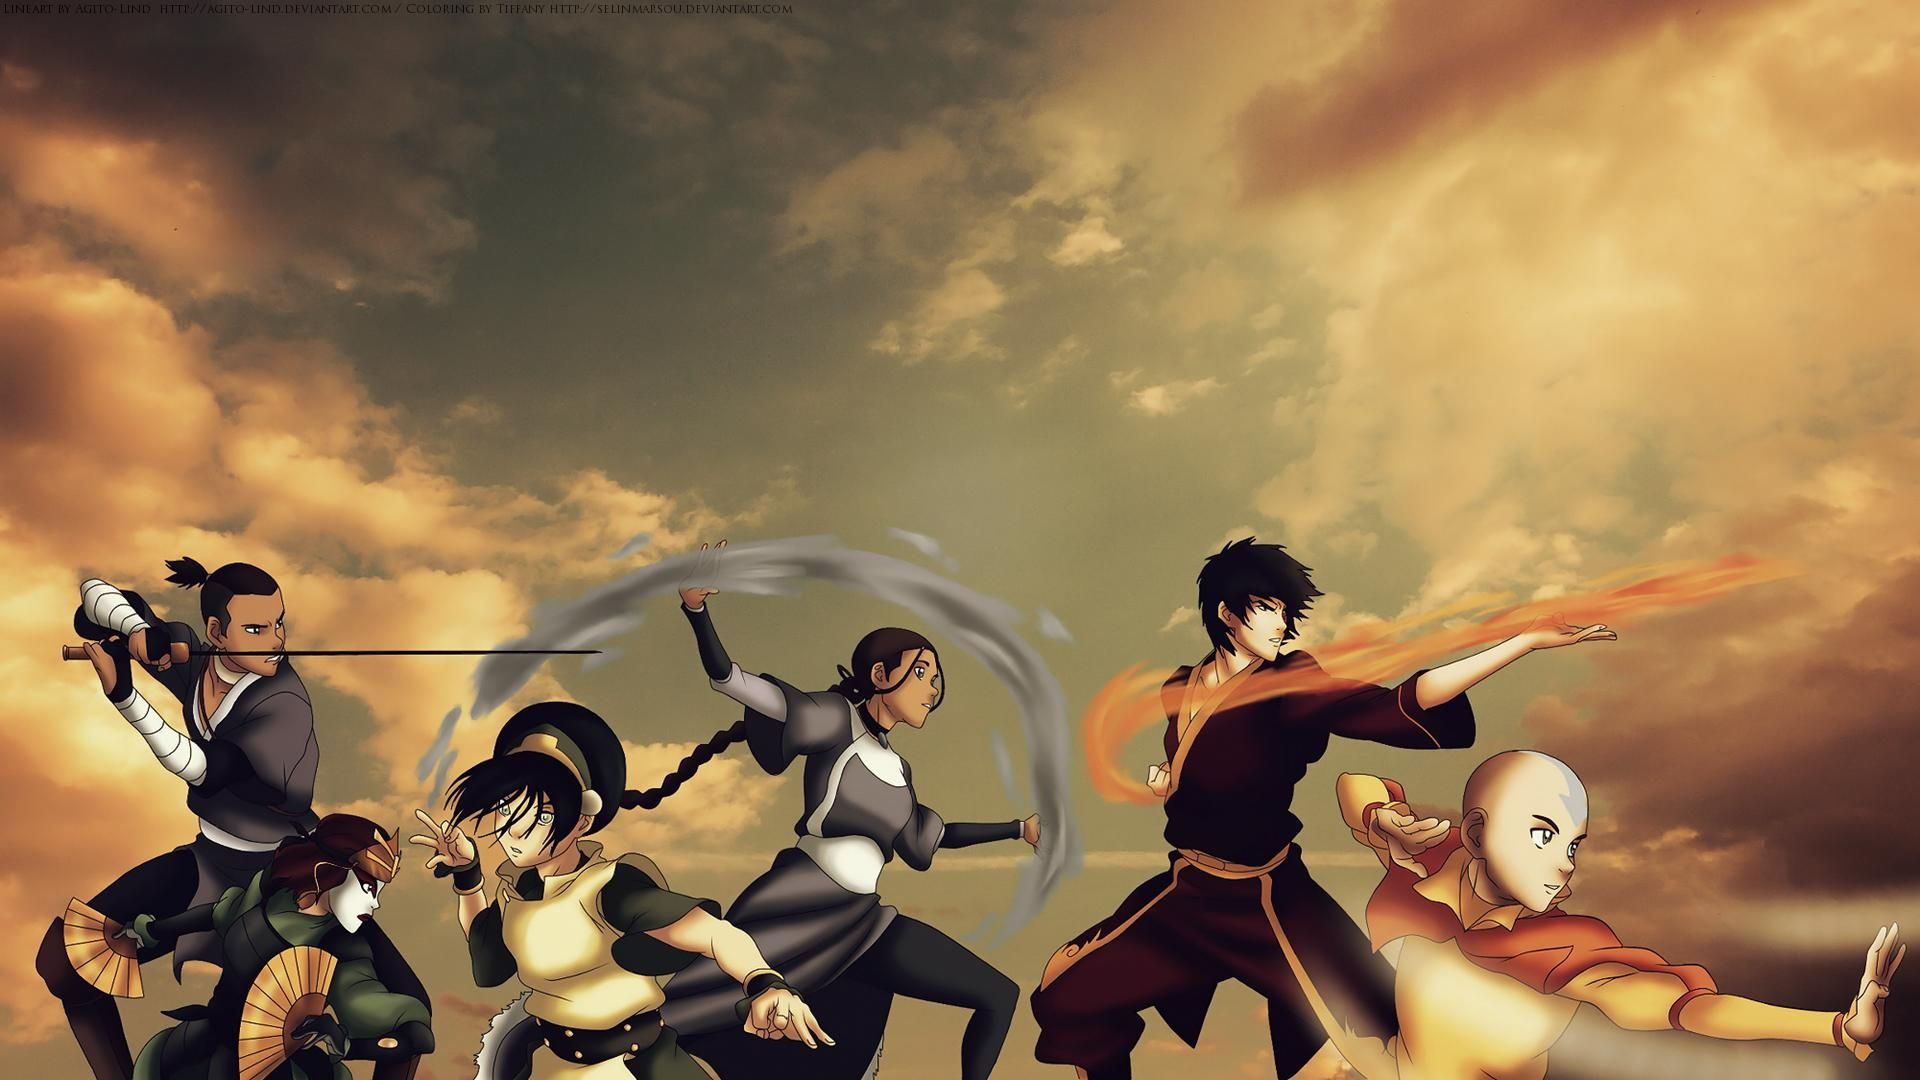 Avatar The Last Airbender Wallpapers High Quality Download Free The Last Airbender Avatar Avatar The Last Airbender